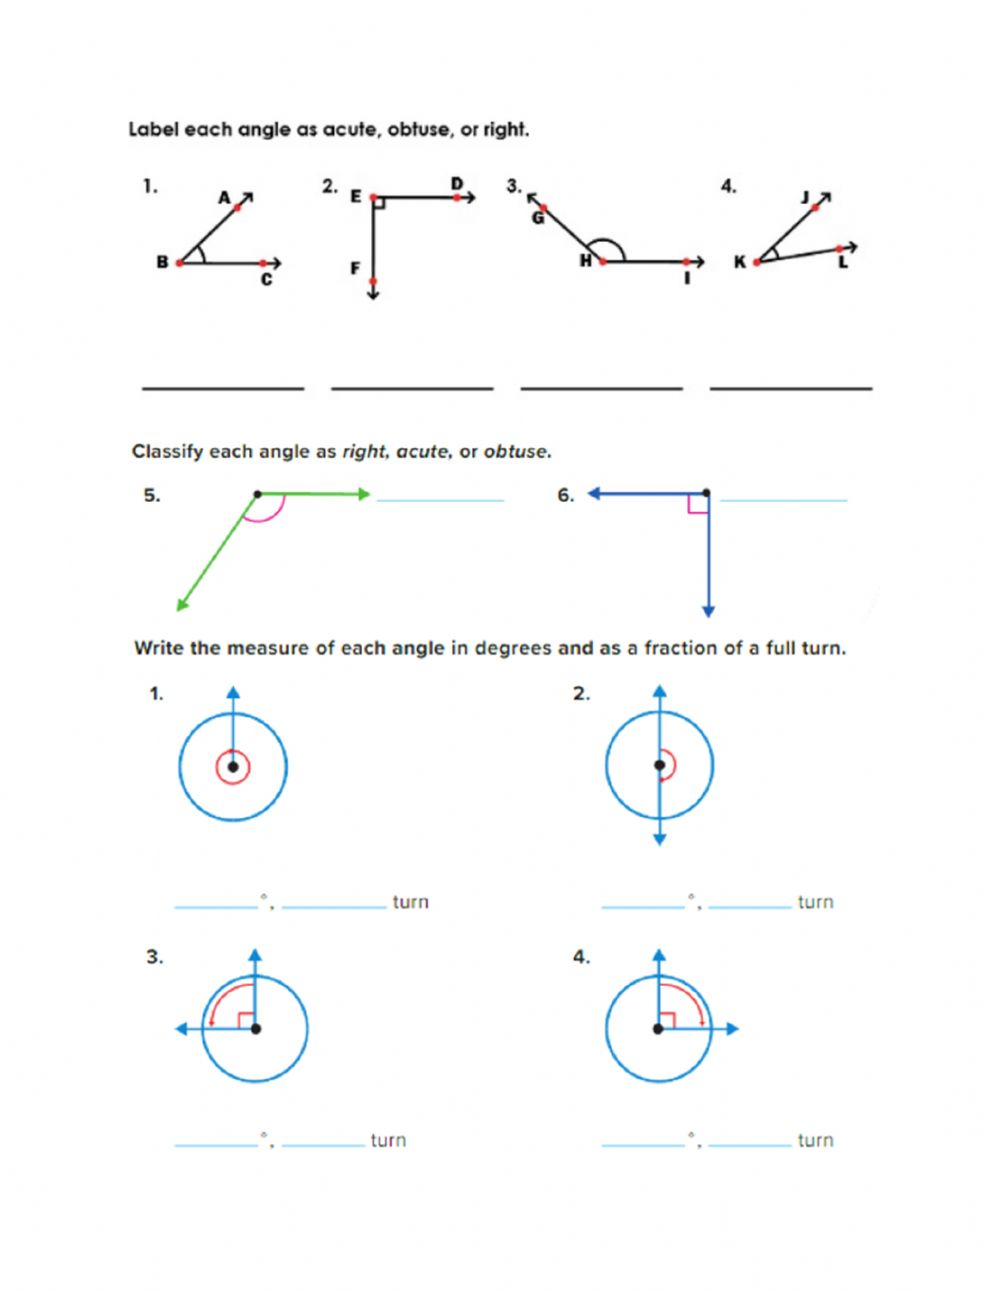 medium resolution of Classify angles and measuring by a fraction of full turn worksheet